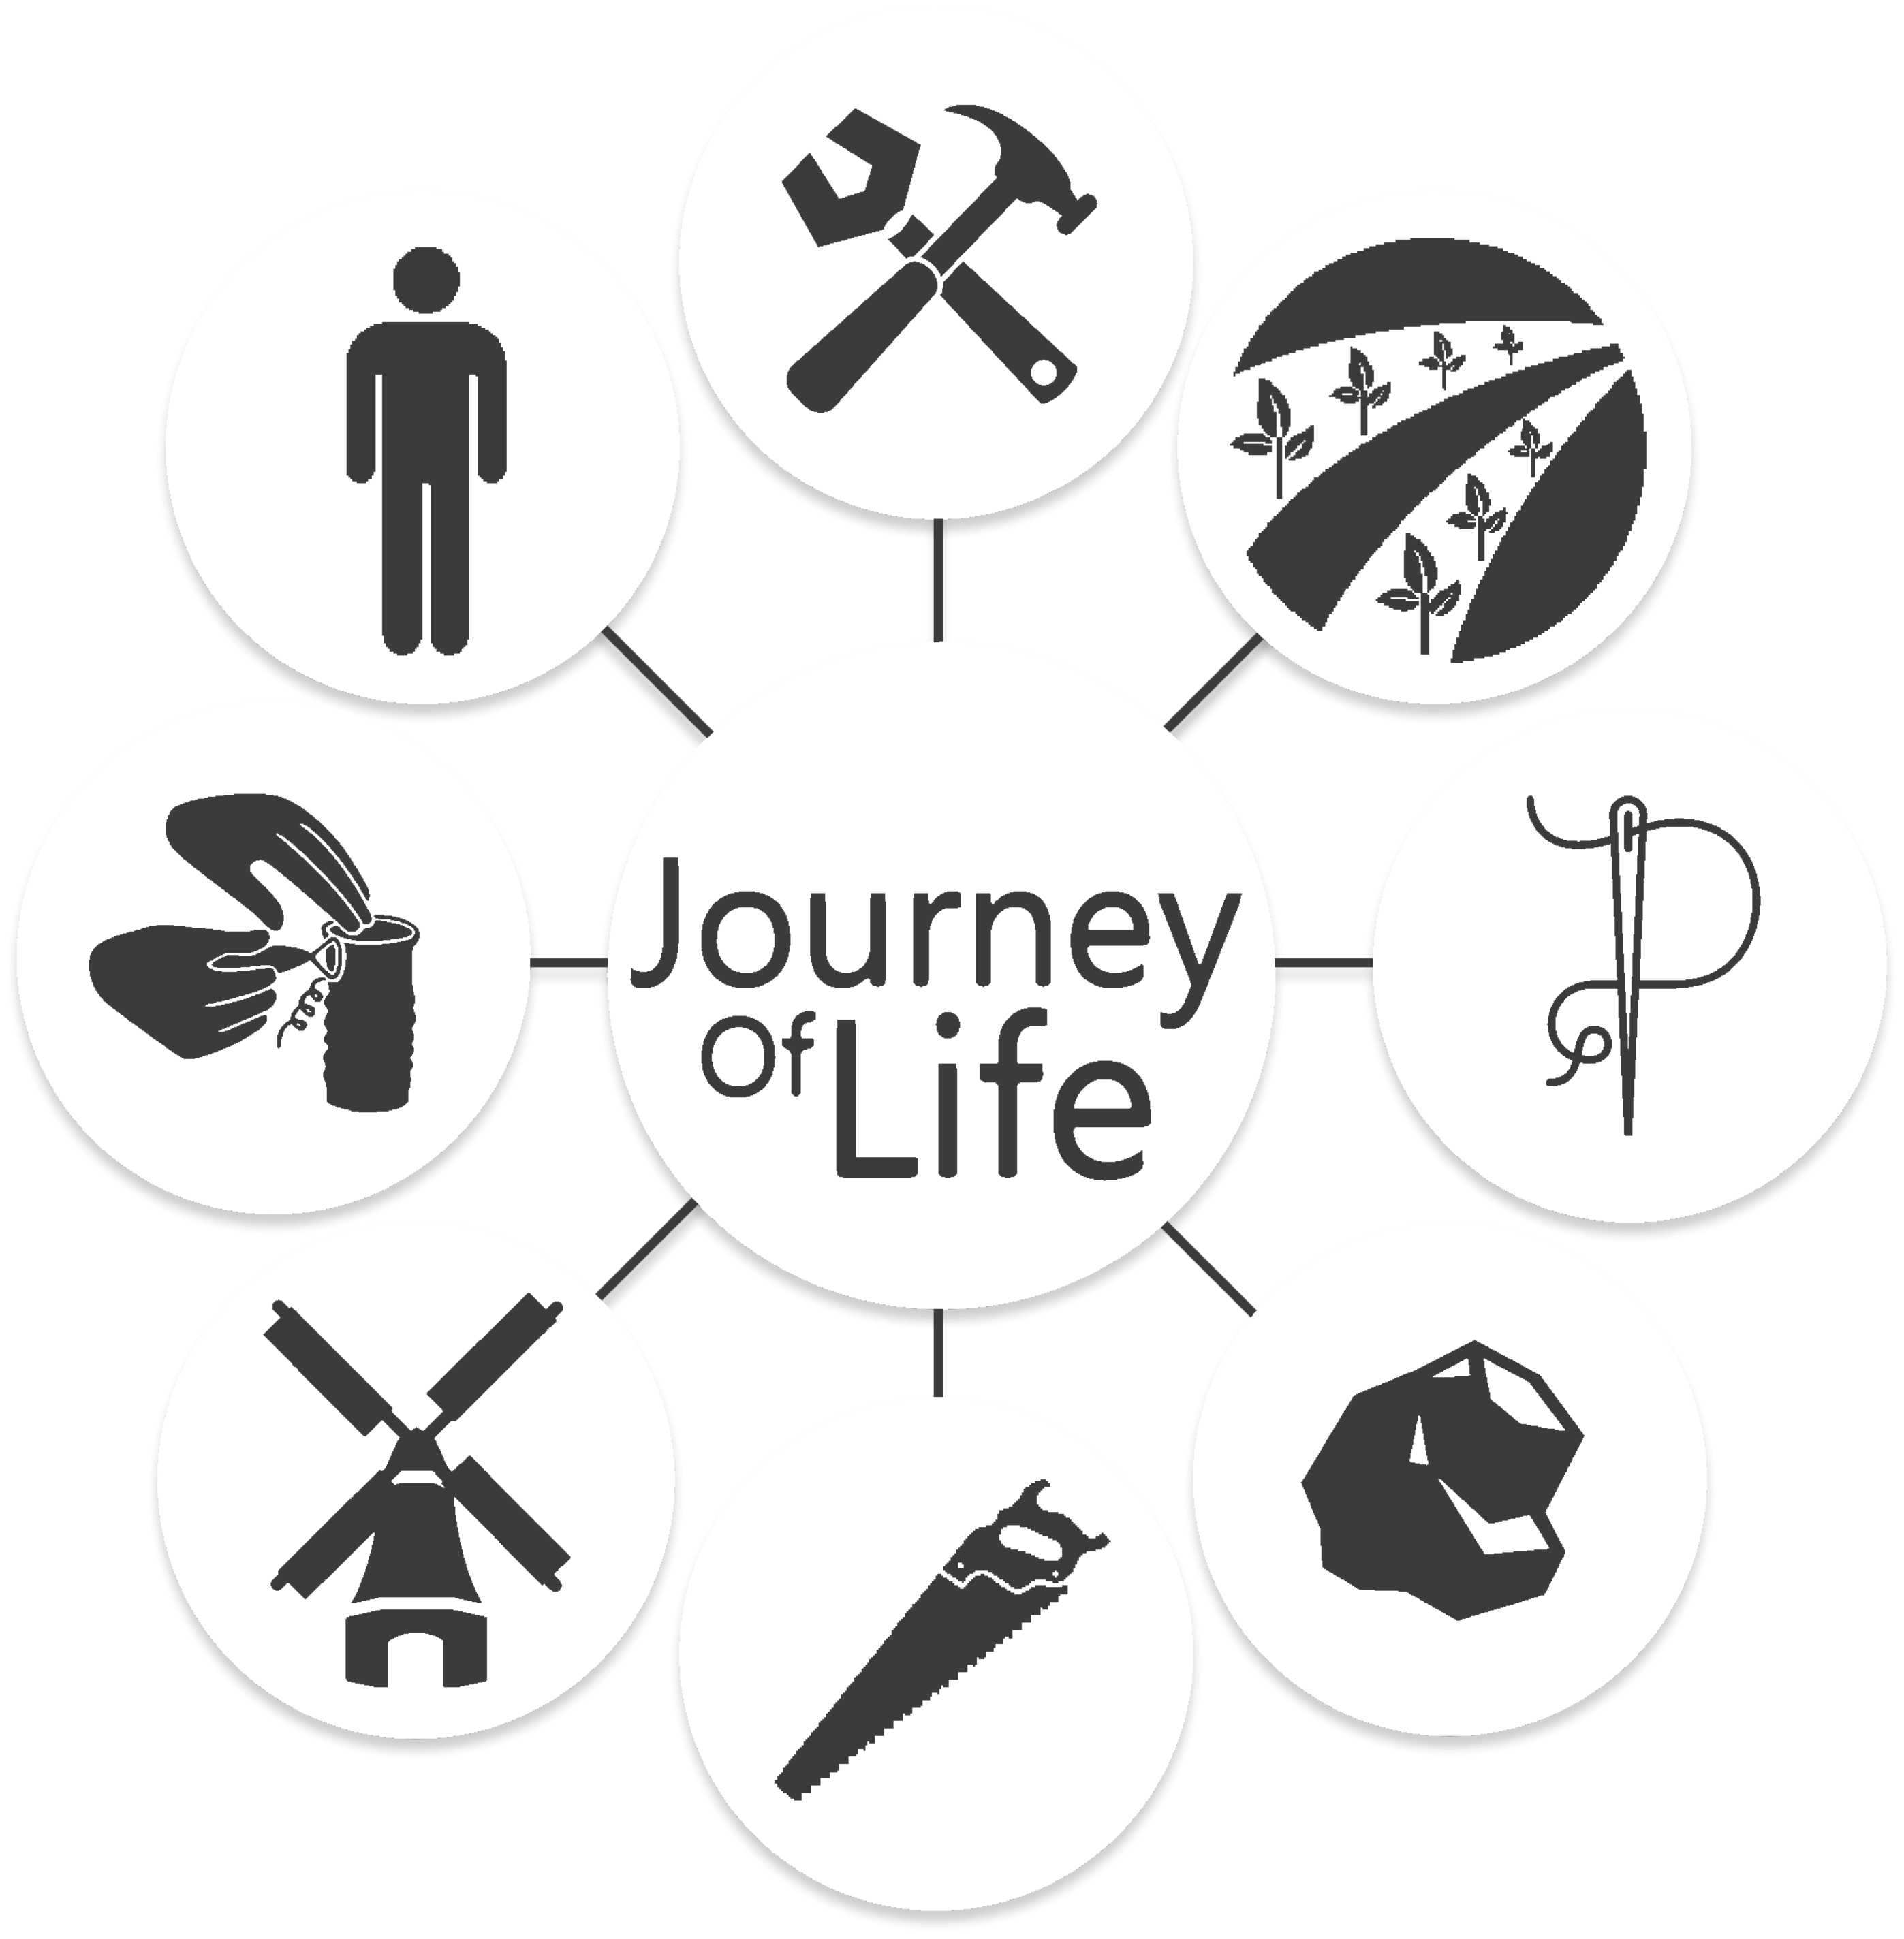 Journey of life clipart clip art free download Free Long Clipart life journey, Download Free Clip Art on Owips.com clip art free download